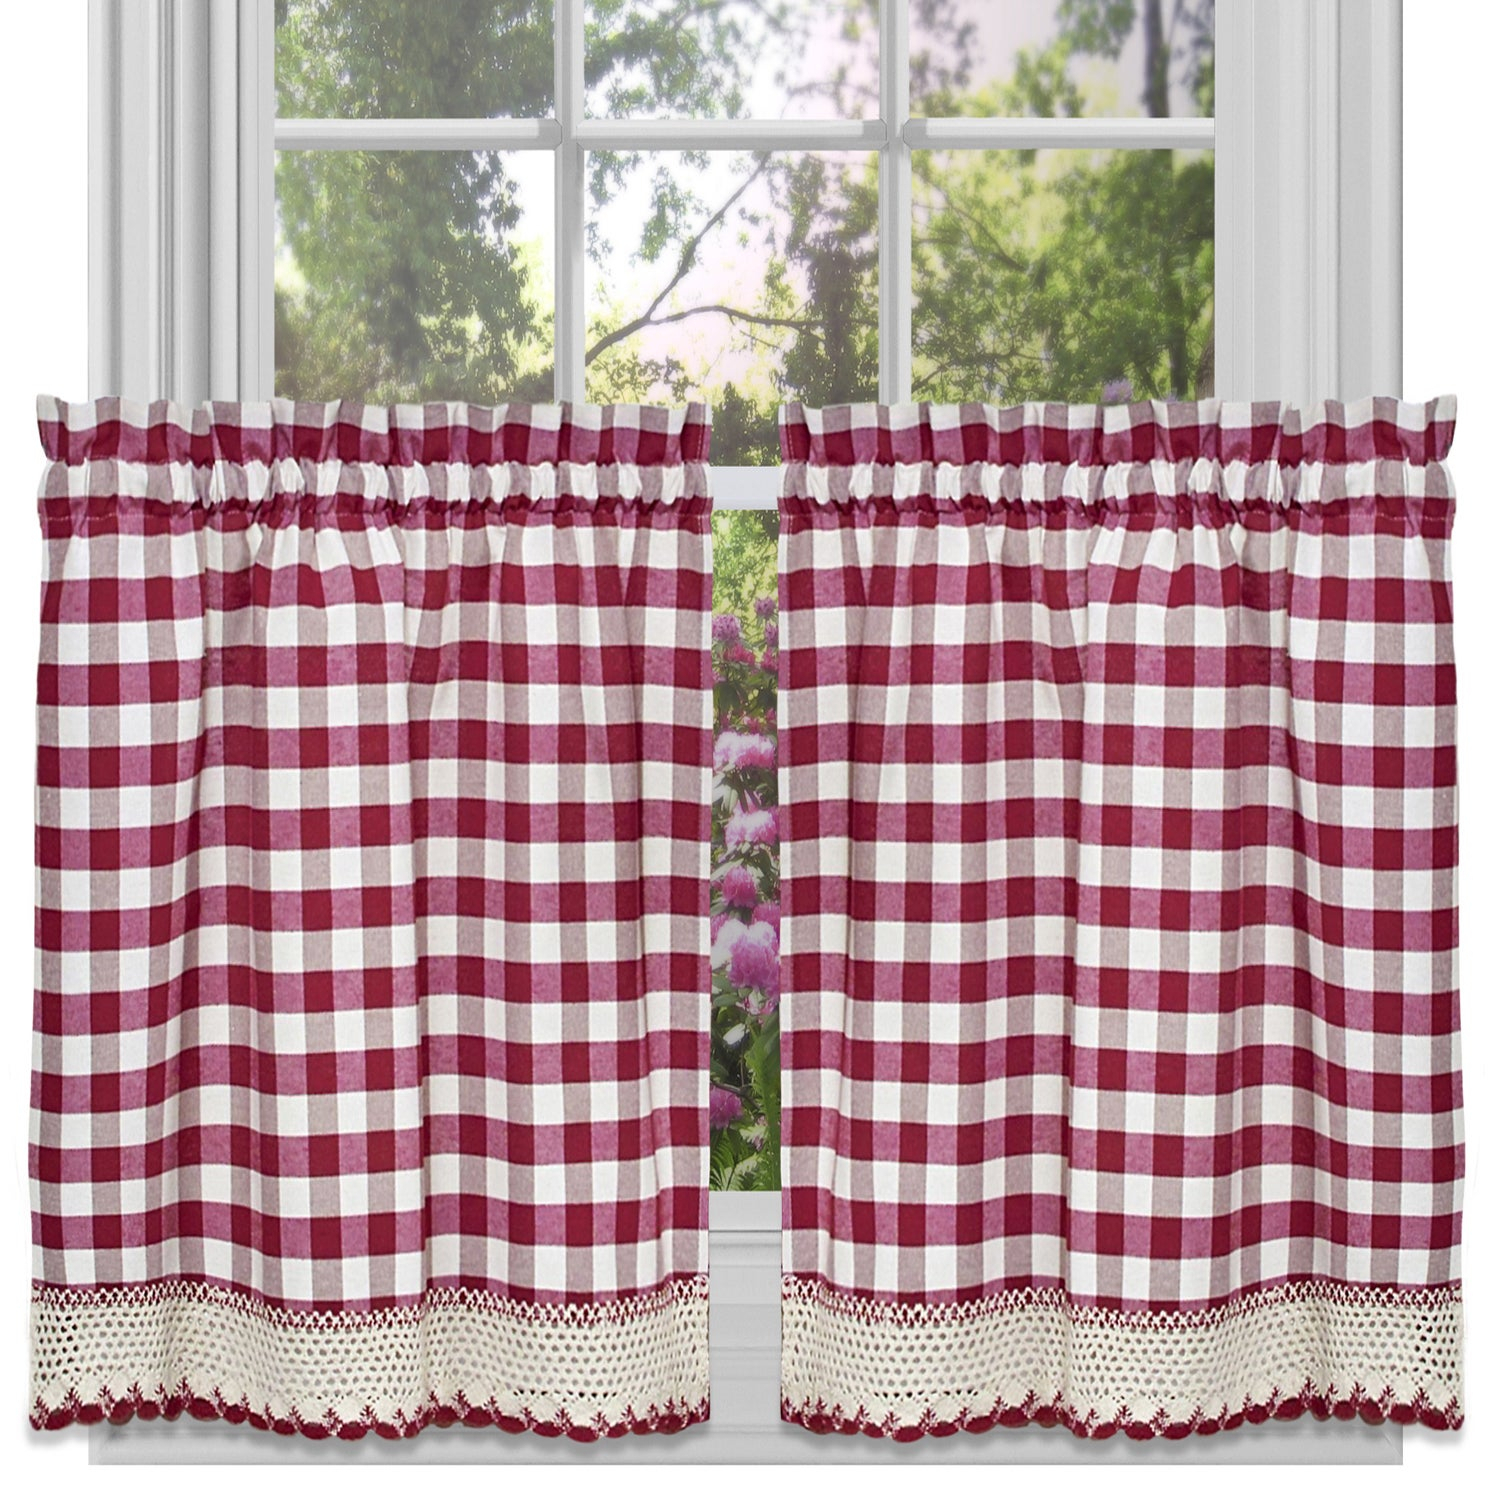 Classic Buffalo Check Kitchen Burgundy/white Curtain Set Or Separates Inside Kitchen Burgundy/white Curtain Sets (View 2 of 20)